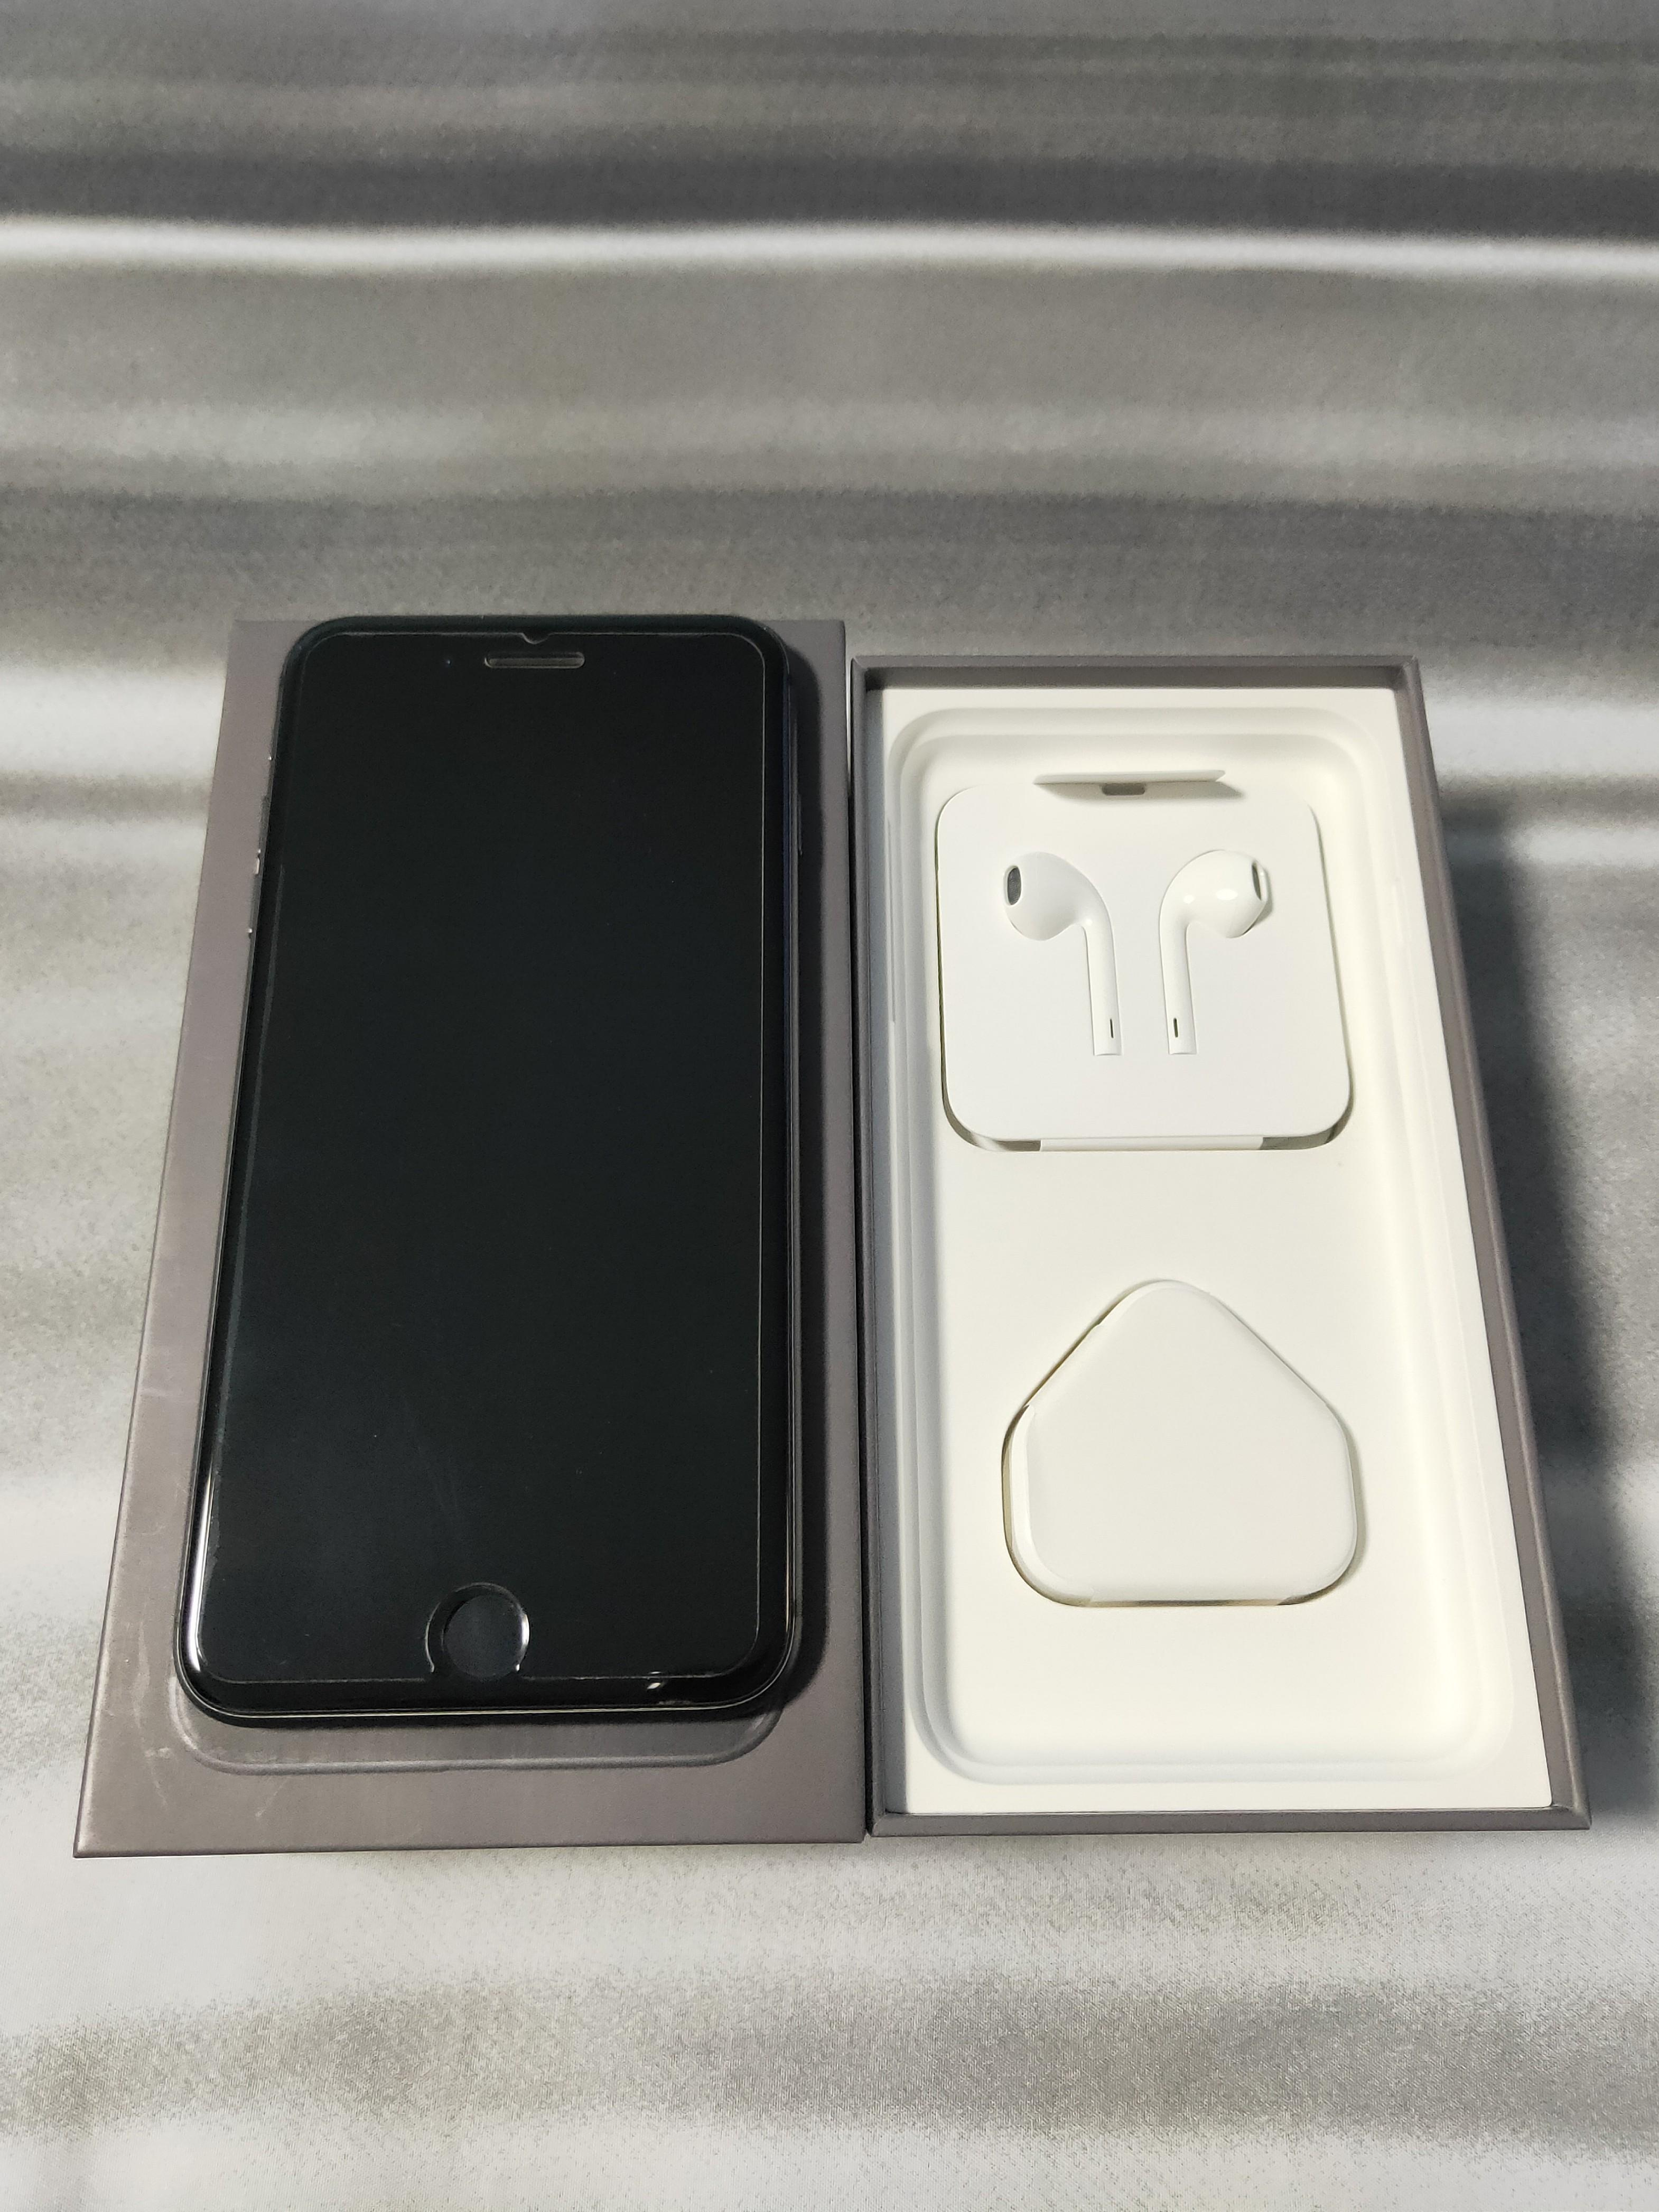 iPhone 8 Plus 64GB - Space Gray (Used)